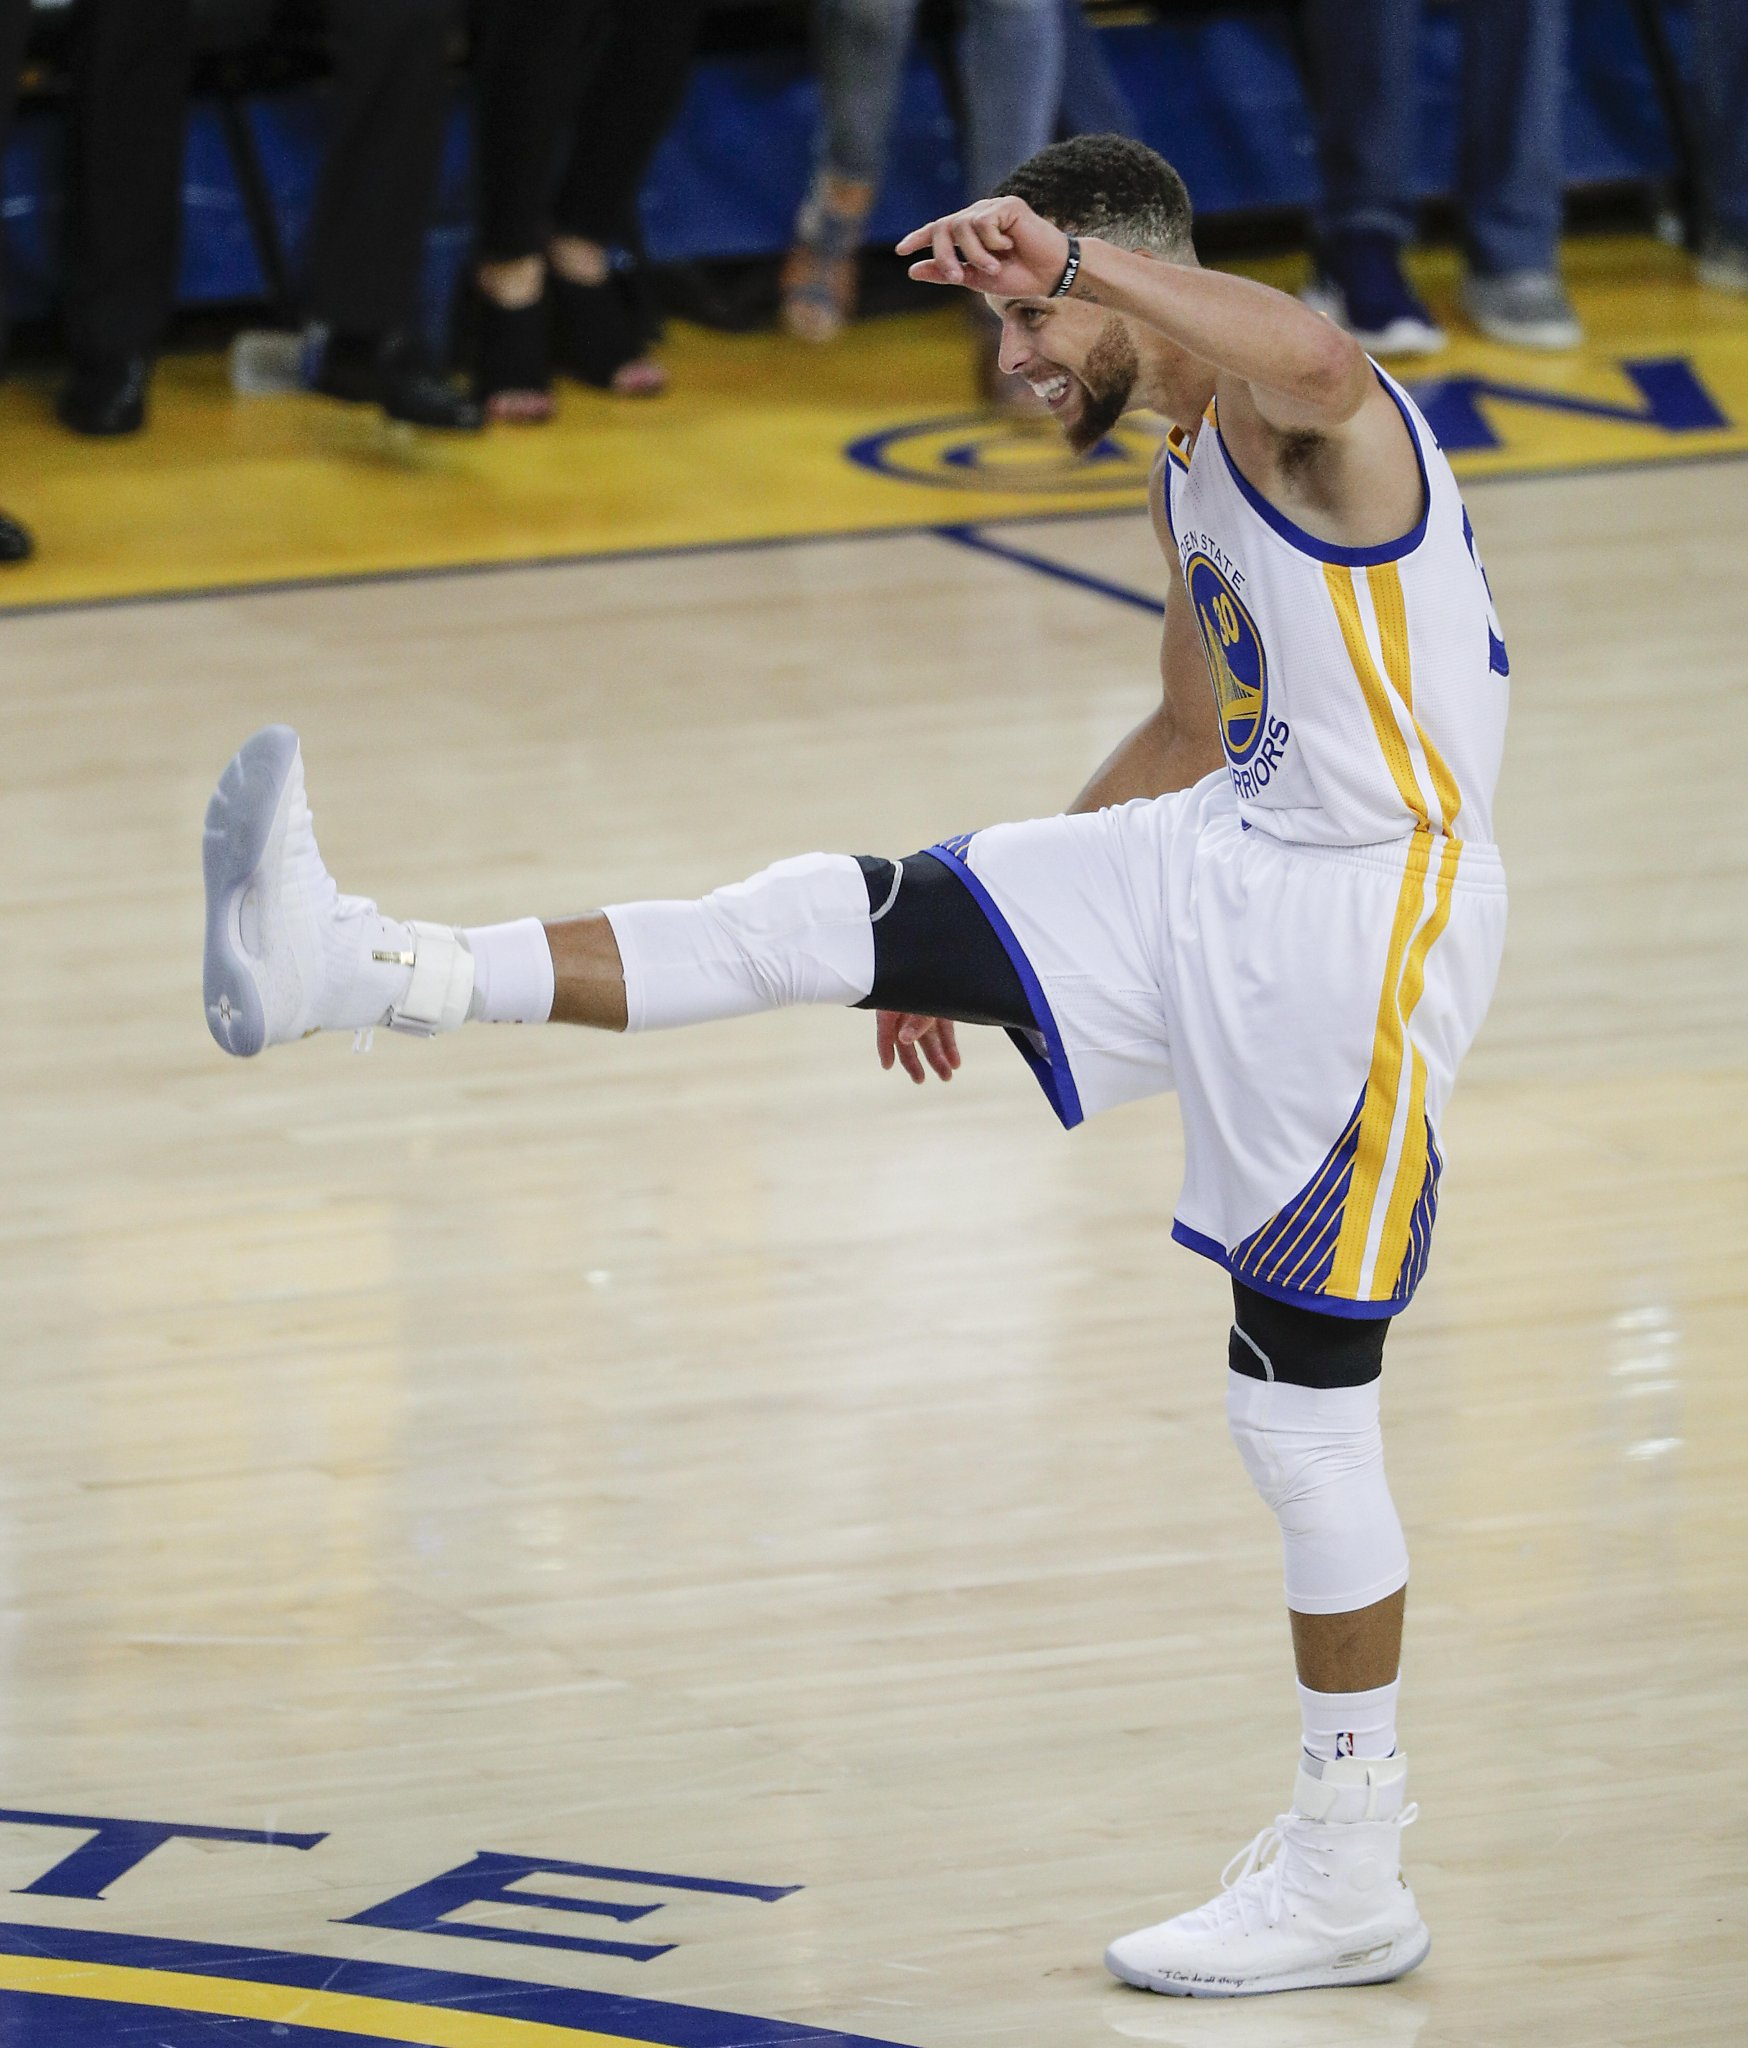 Warriors Record Without Stephen Curry 2017: Watch Out Cleveland: Steph Curry's Not Messing Around